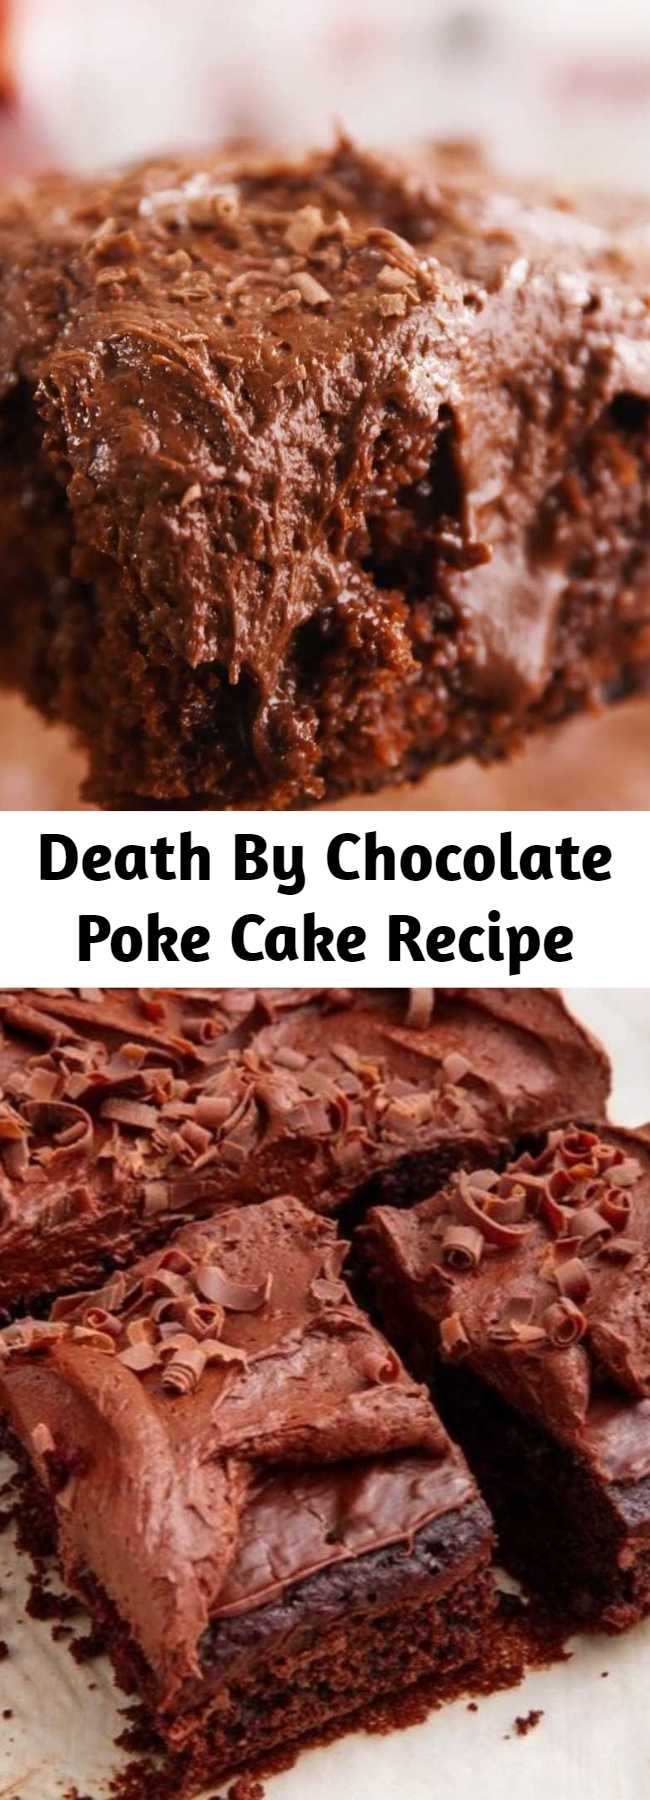 Death By Chocolate Poke Cake Recipe - Chocolate cake, chocolate fudge filling, and chocolate buttermilk…this recipe is for serious chocoholics only. #easy #recipe #dessert #chocolate #pokecake #deathbychocolate #desserts #baking #cake